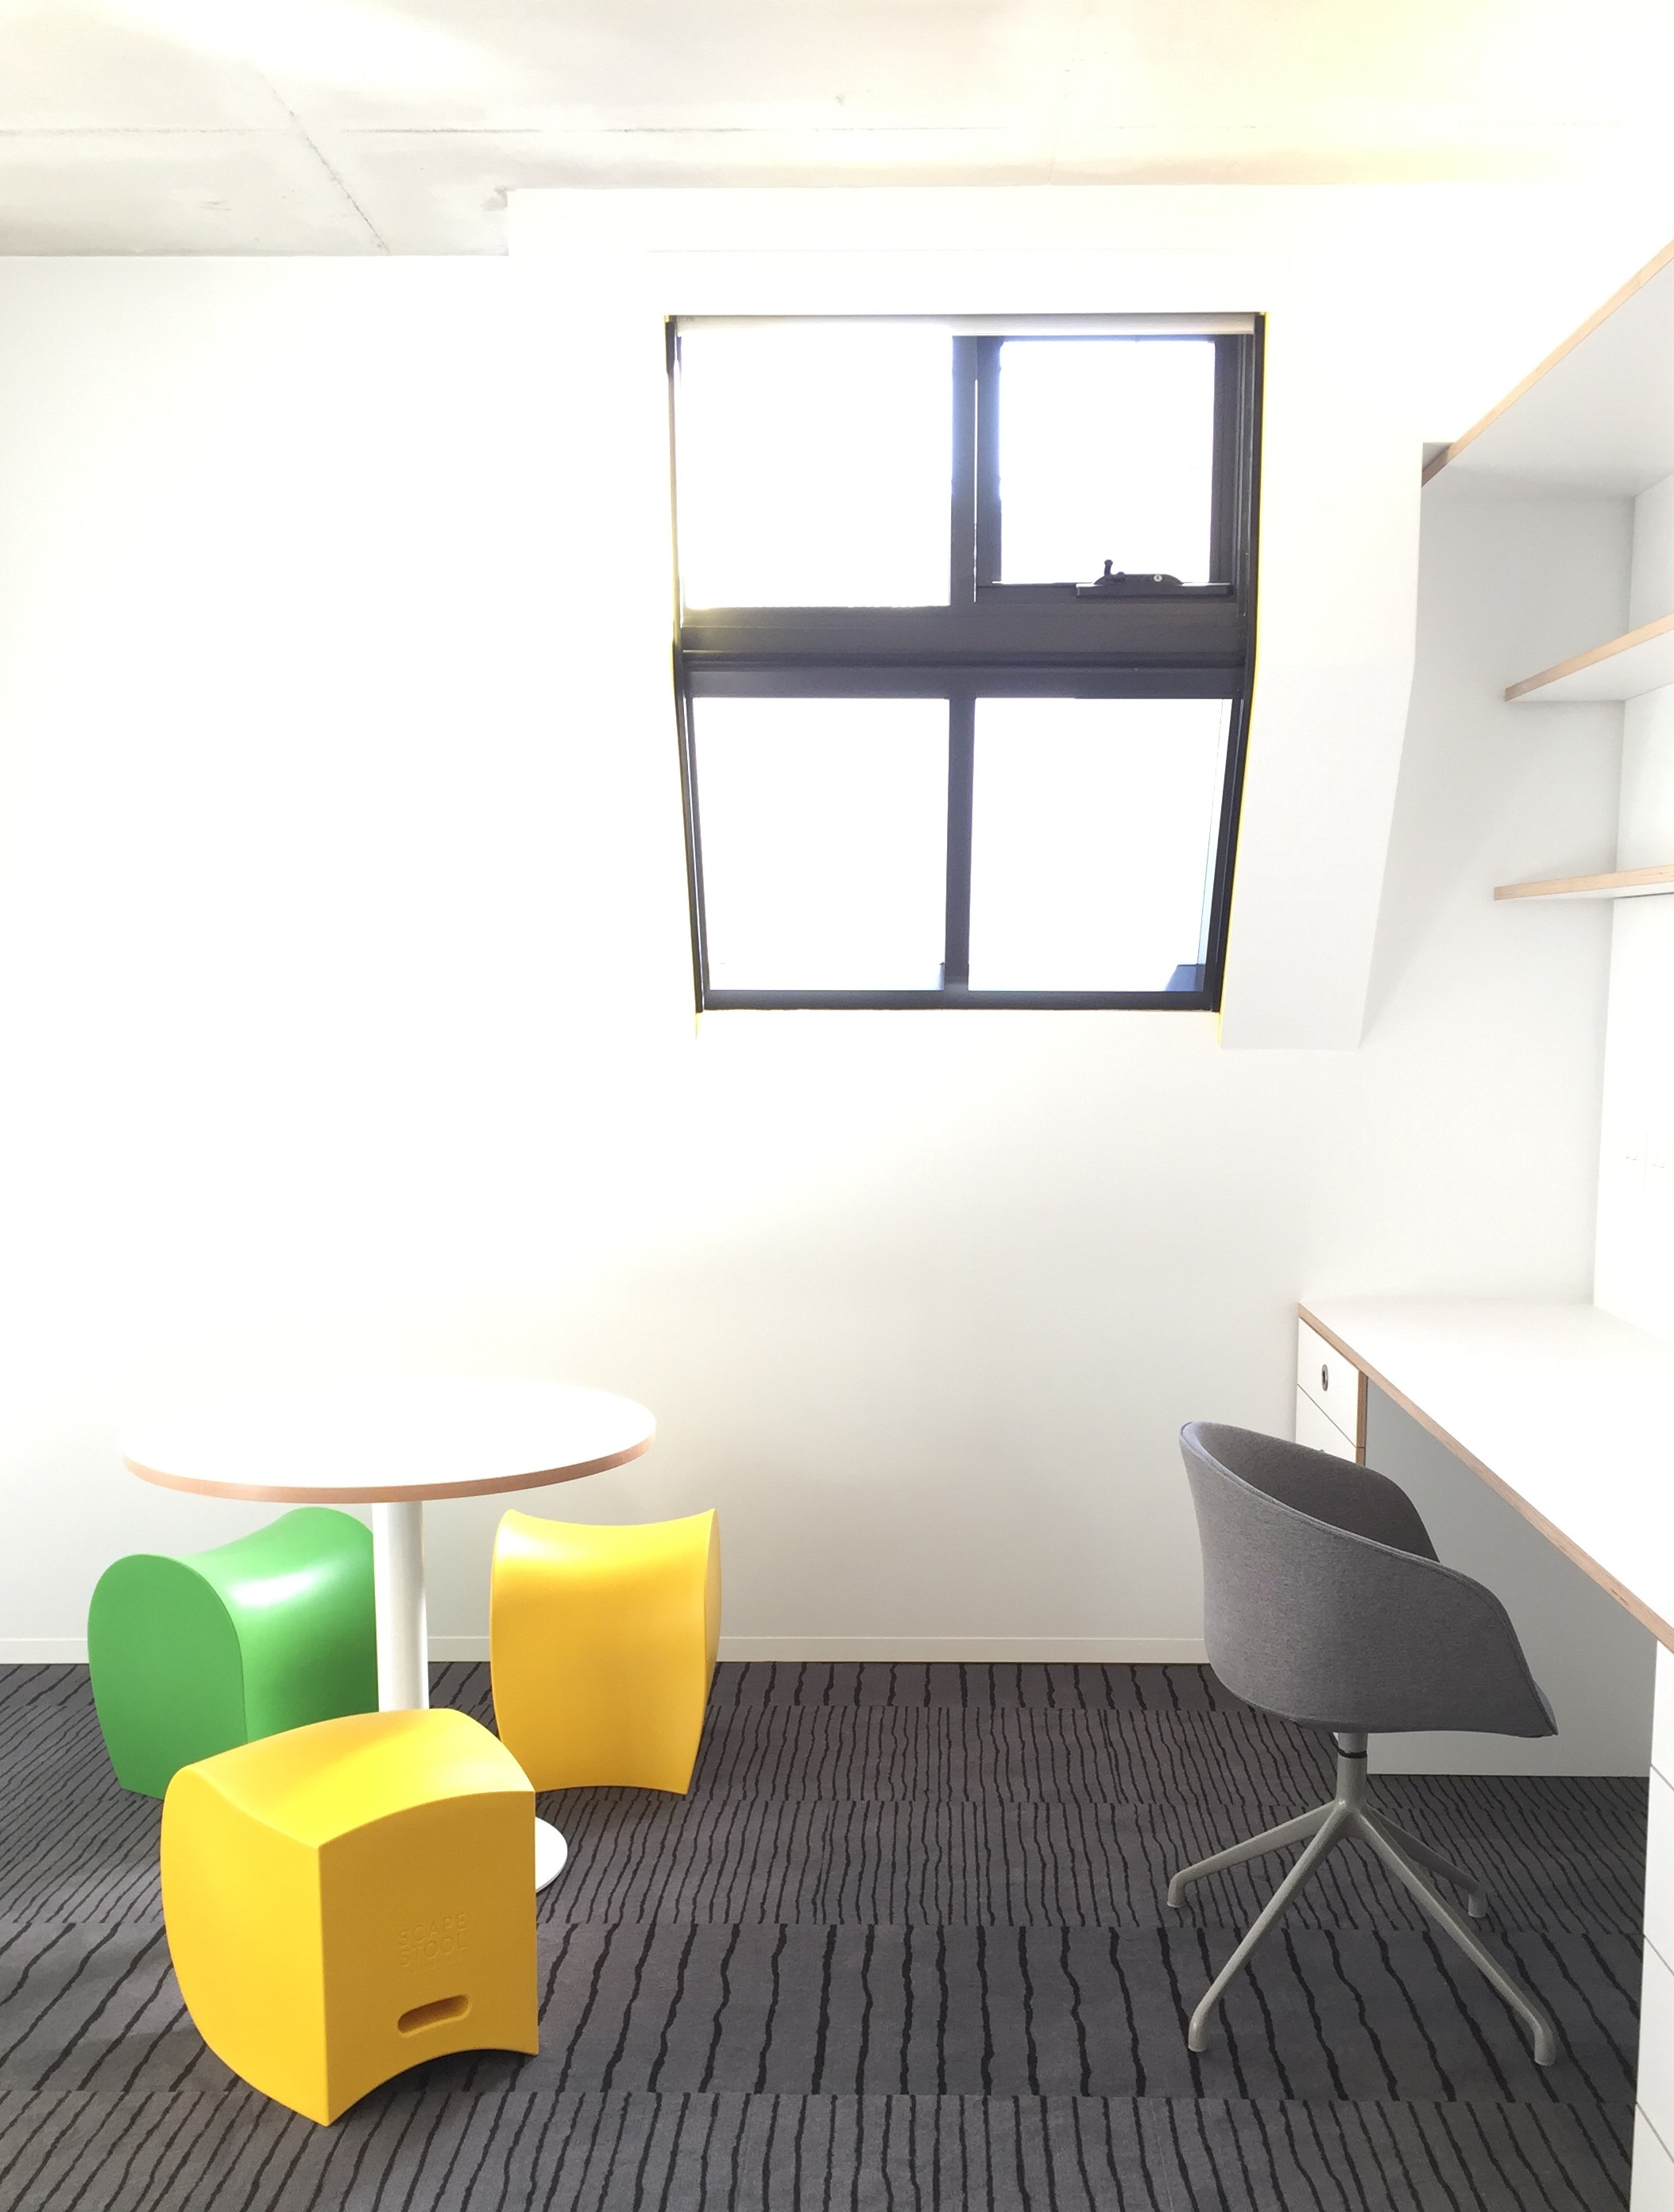 Scape Abercrombie St_Grey Swivel Chair, 900mm Table and Scape Stool Green and Yellow